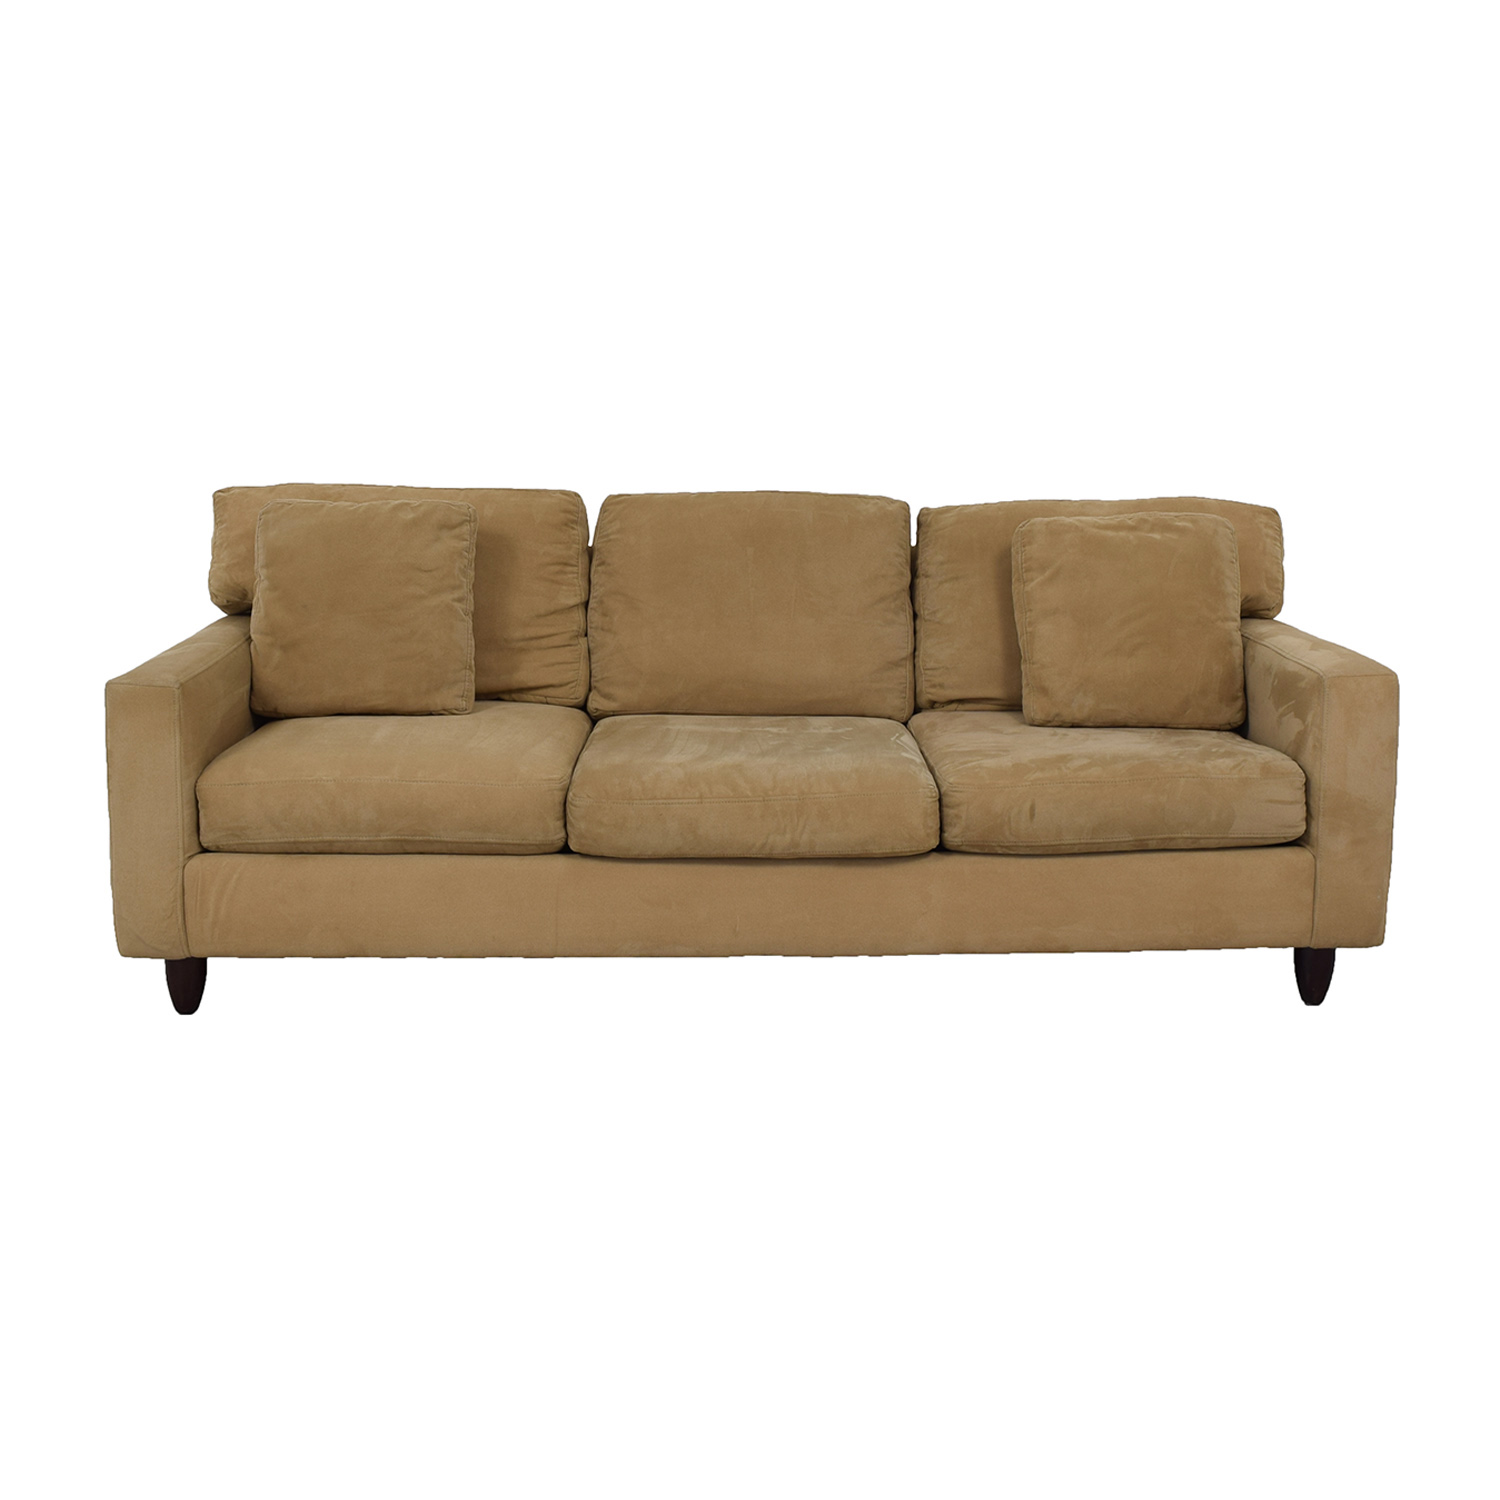 Max Home Max Home Tan Sectional Sofa for sale